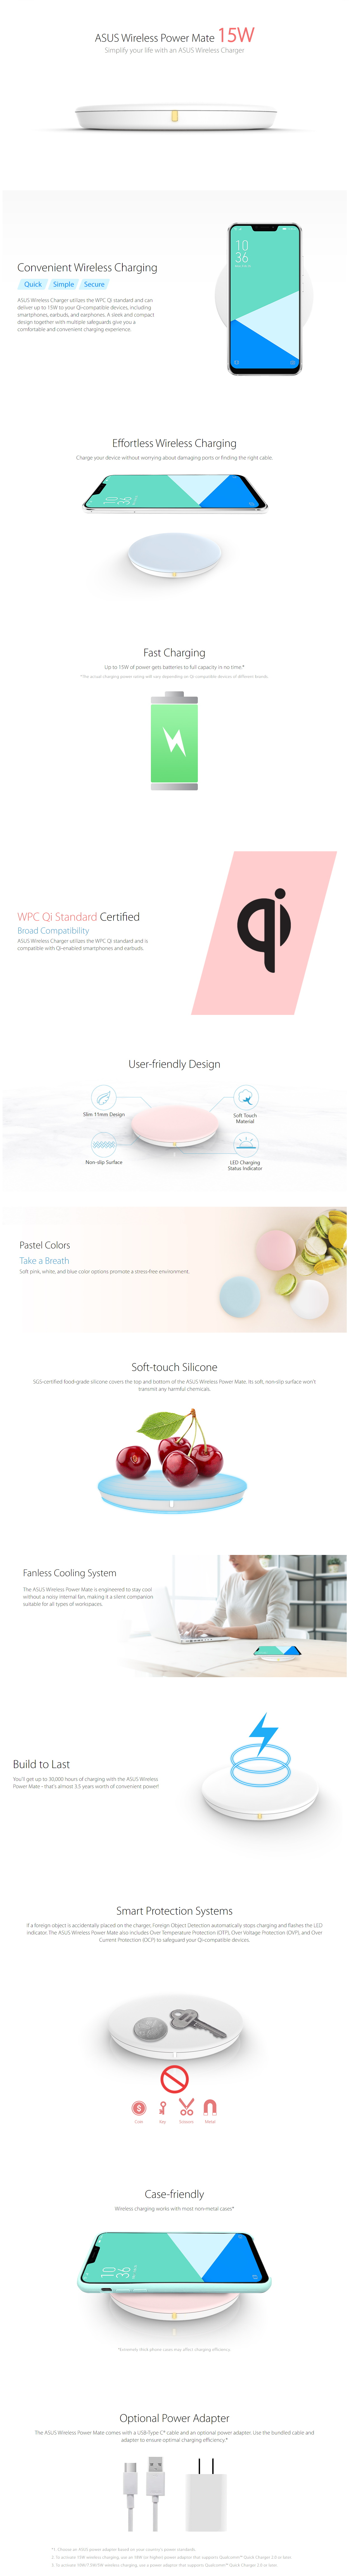 A large marketing image providing additional information about the product ASUS Wireless Power Mate Pink - Additional alt info not provided